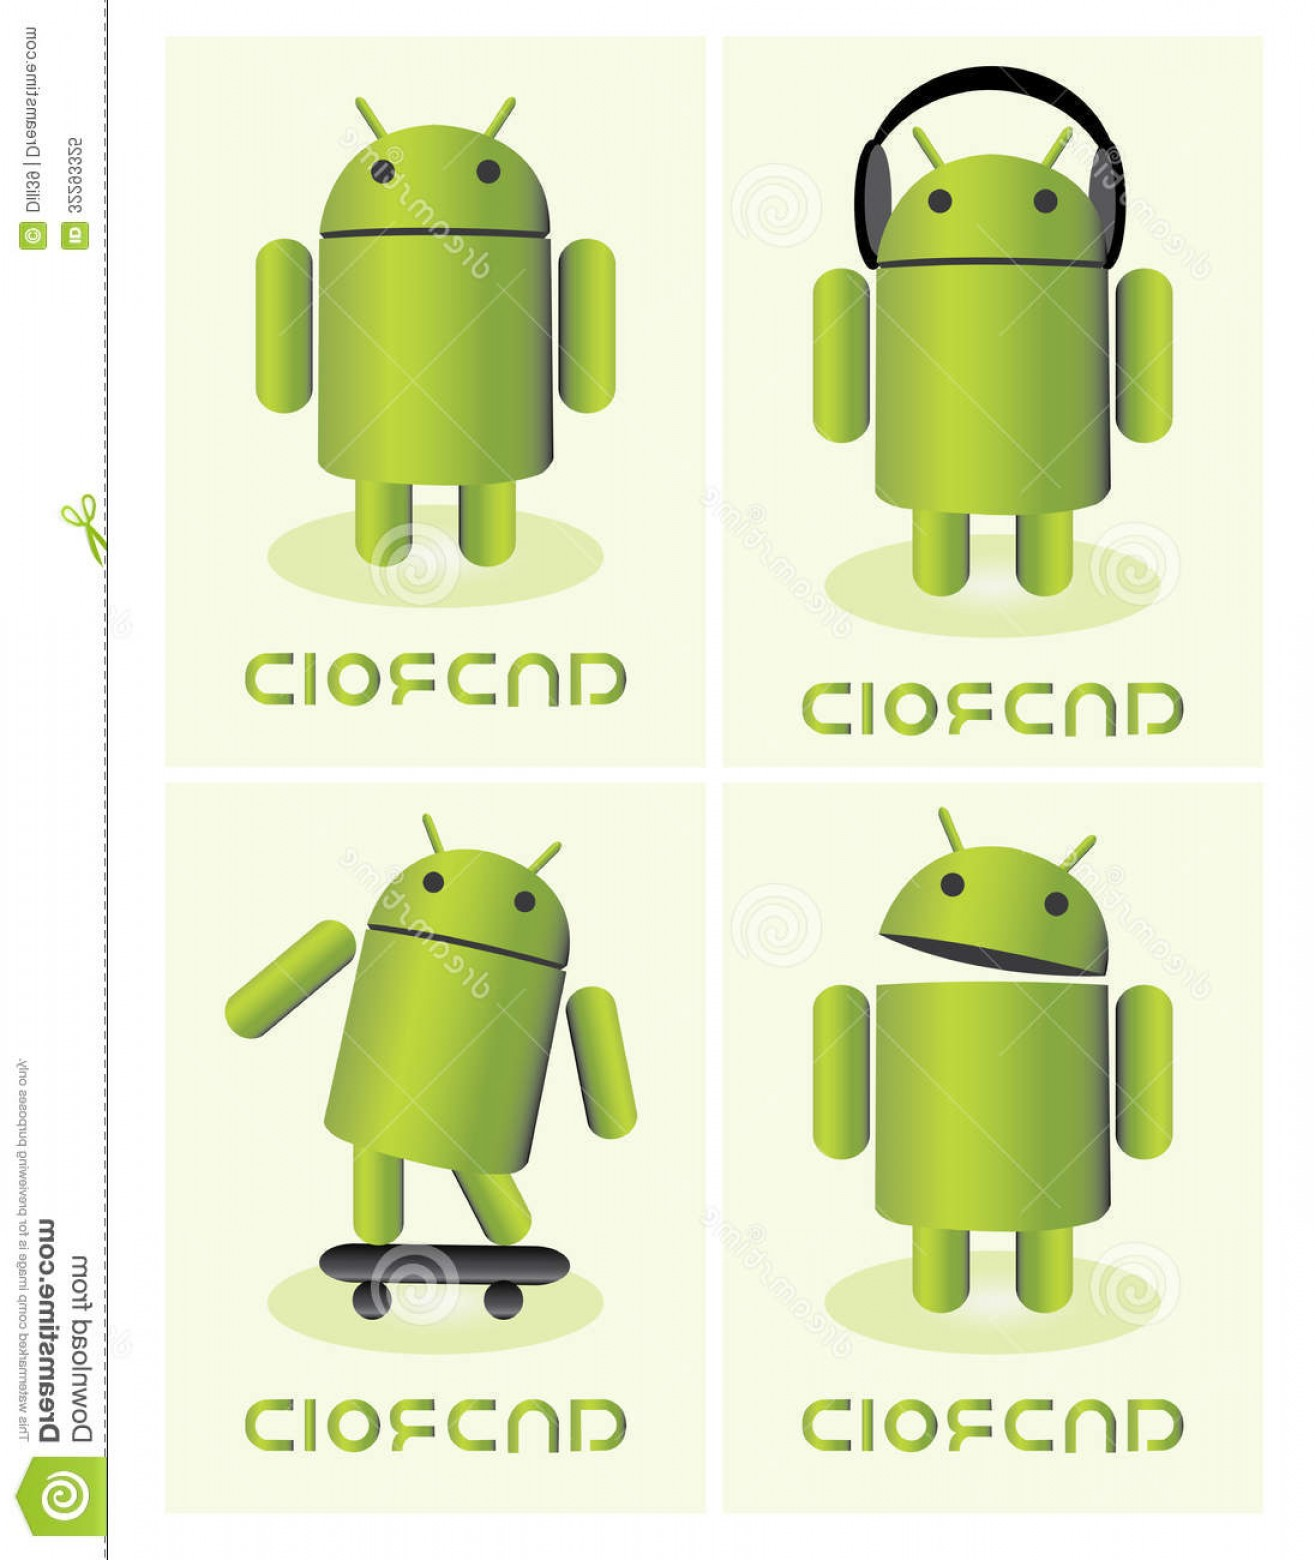 1315x1560 Royalty Free Stock Photo Android Os Logo Vector Illustration Image